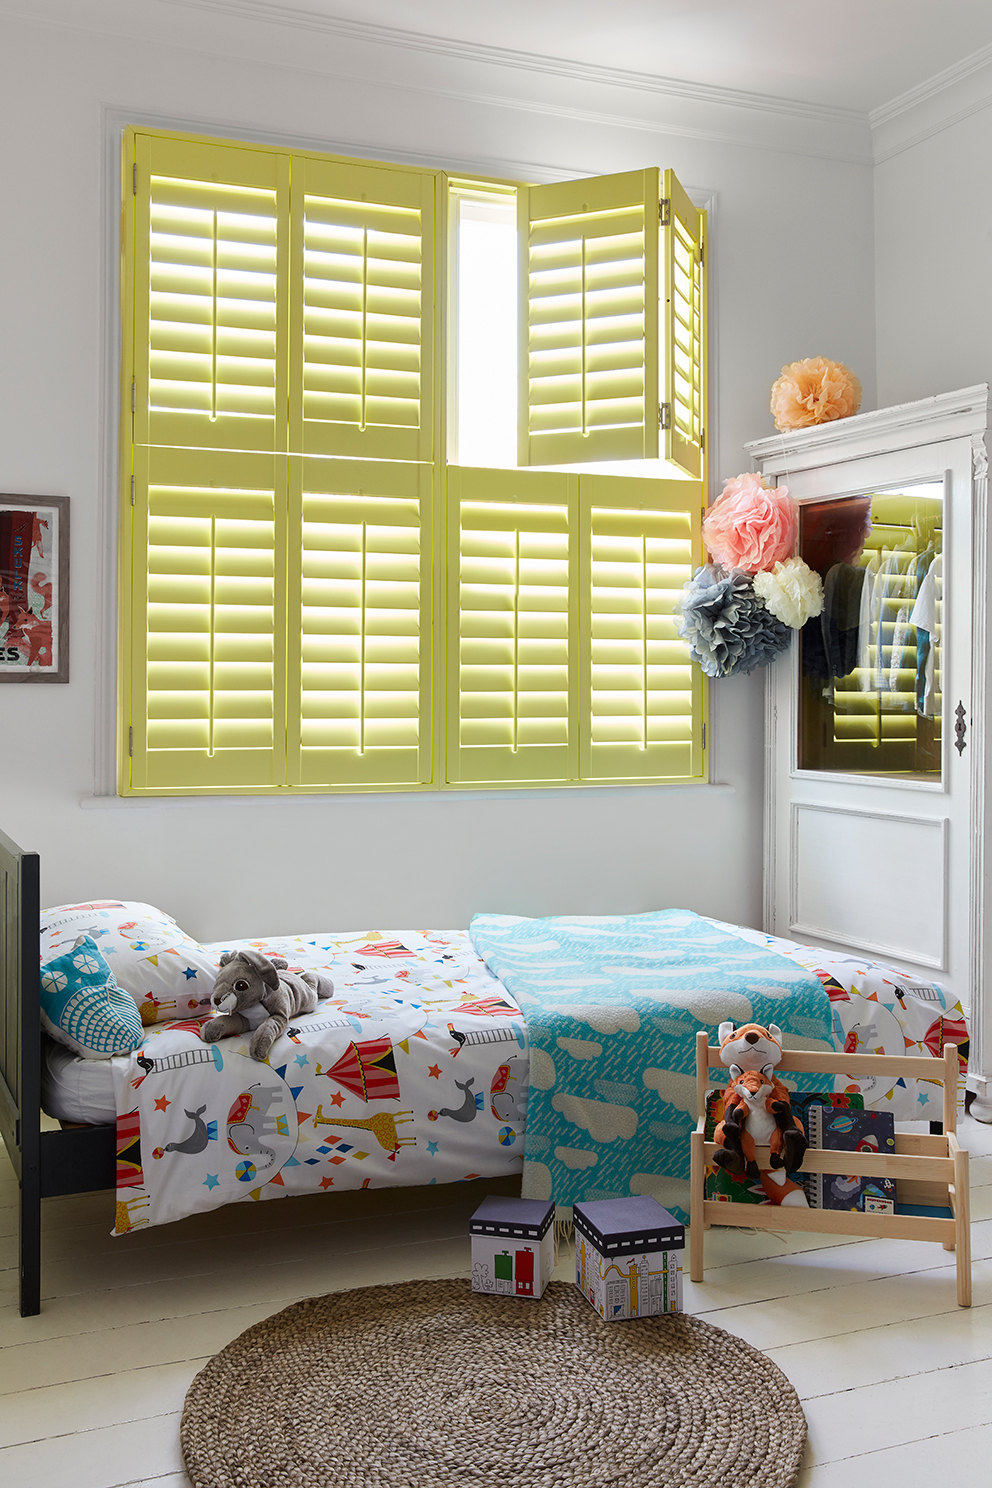 Shutterly Fabulous - French For Pineapple Blog - yellow plantation shutters in childs bedroom